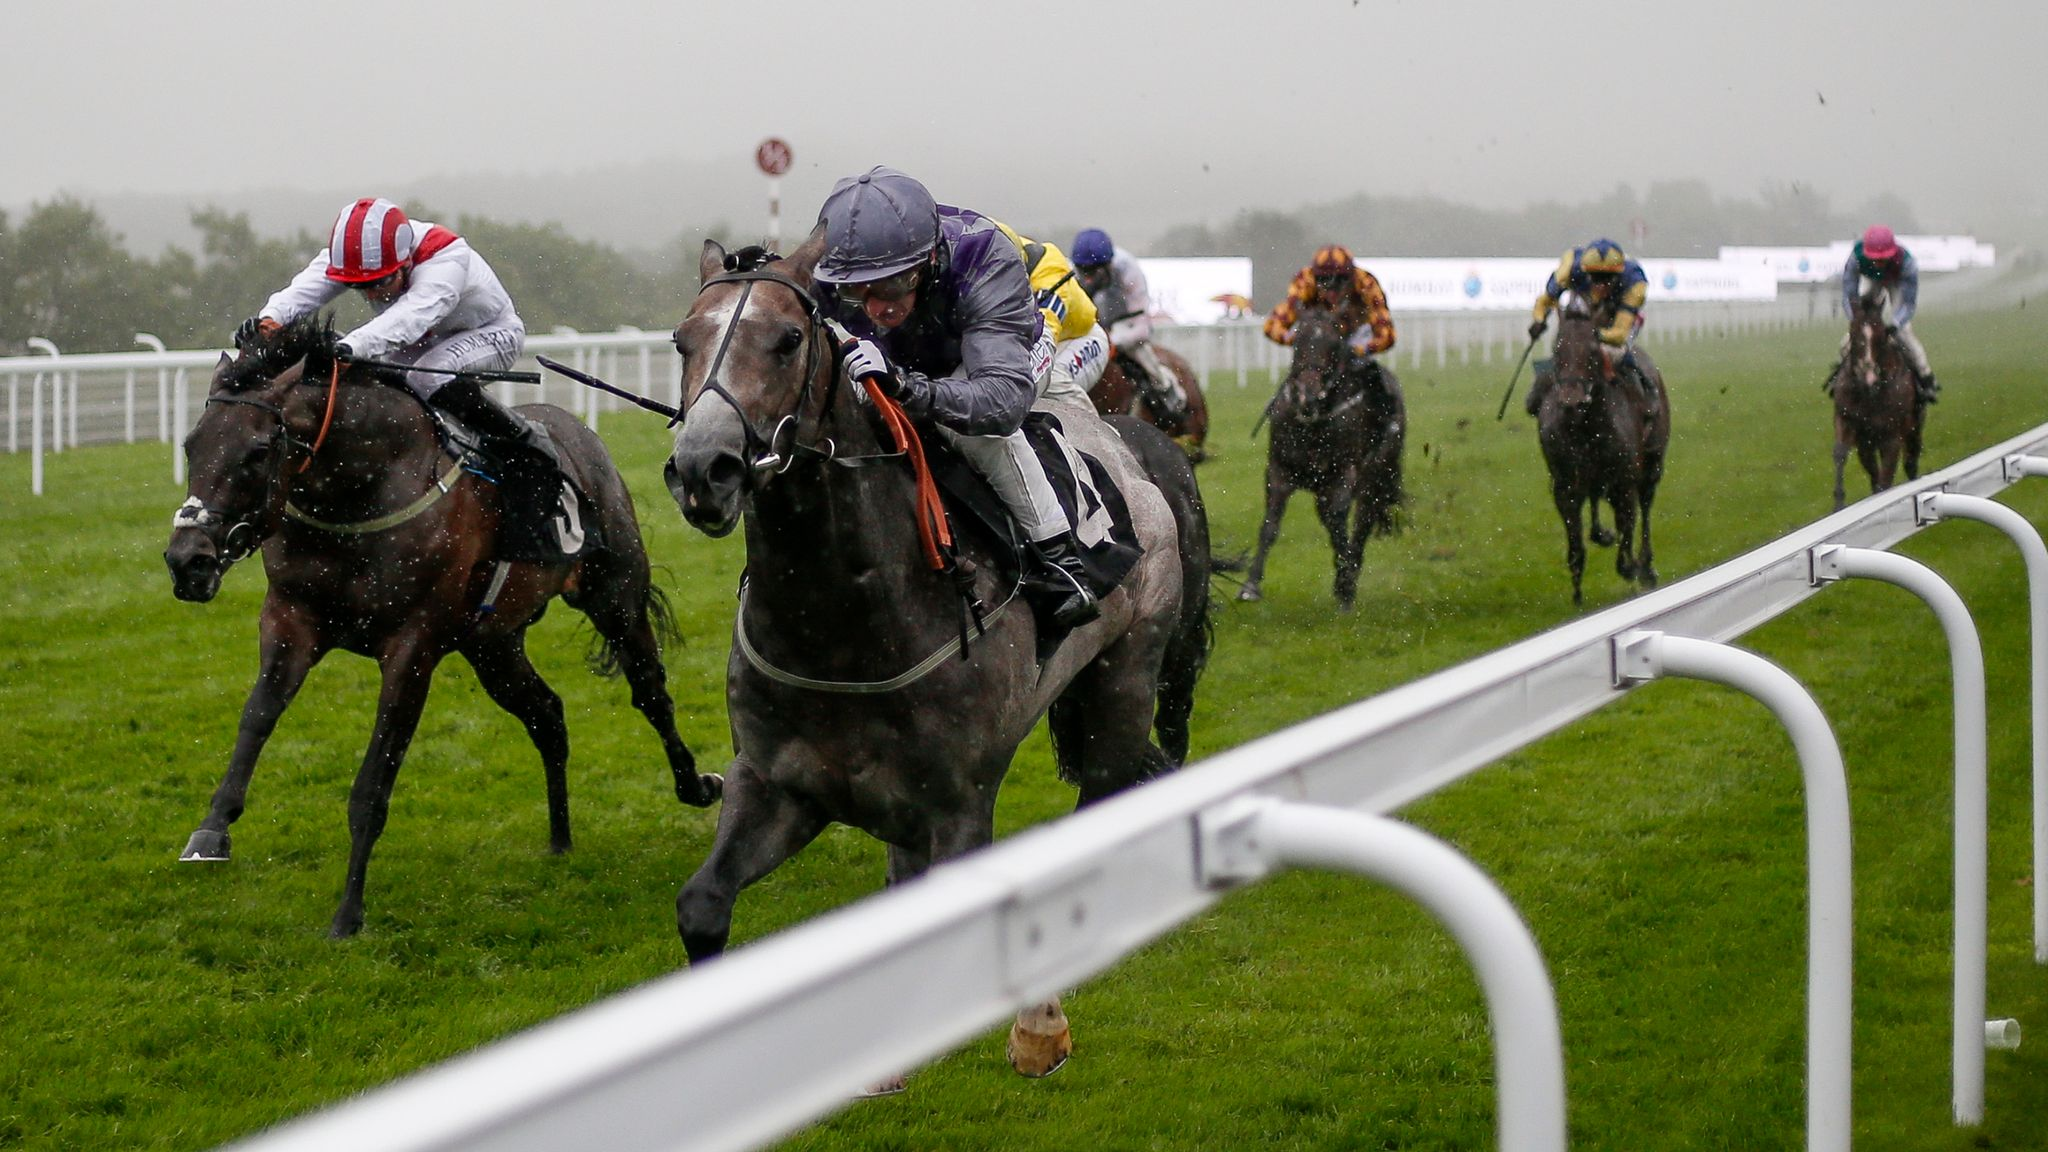 Duke of york stakes betting betting shop roulette strategy